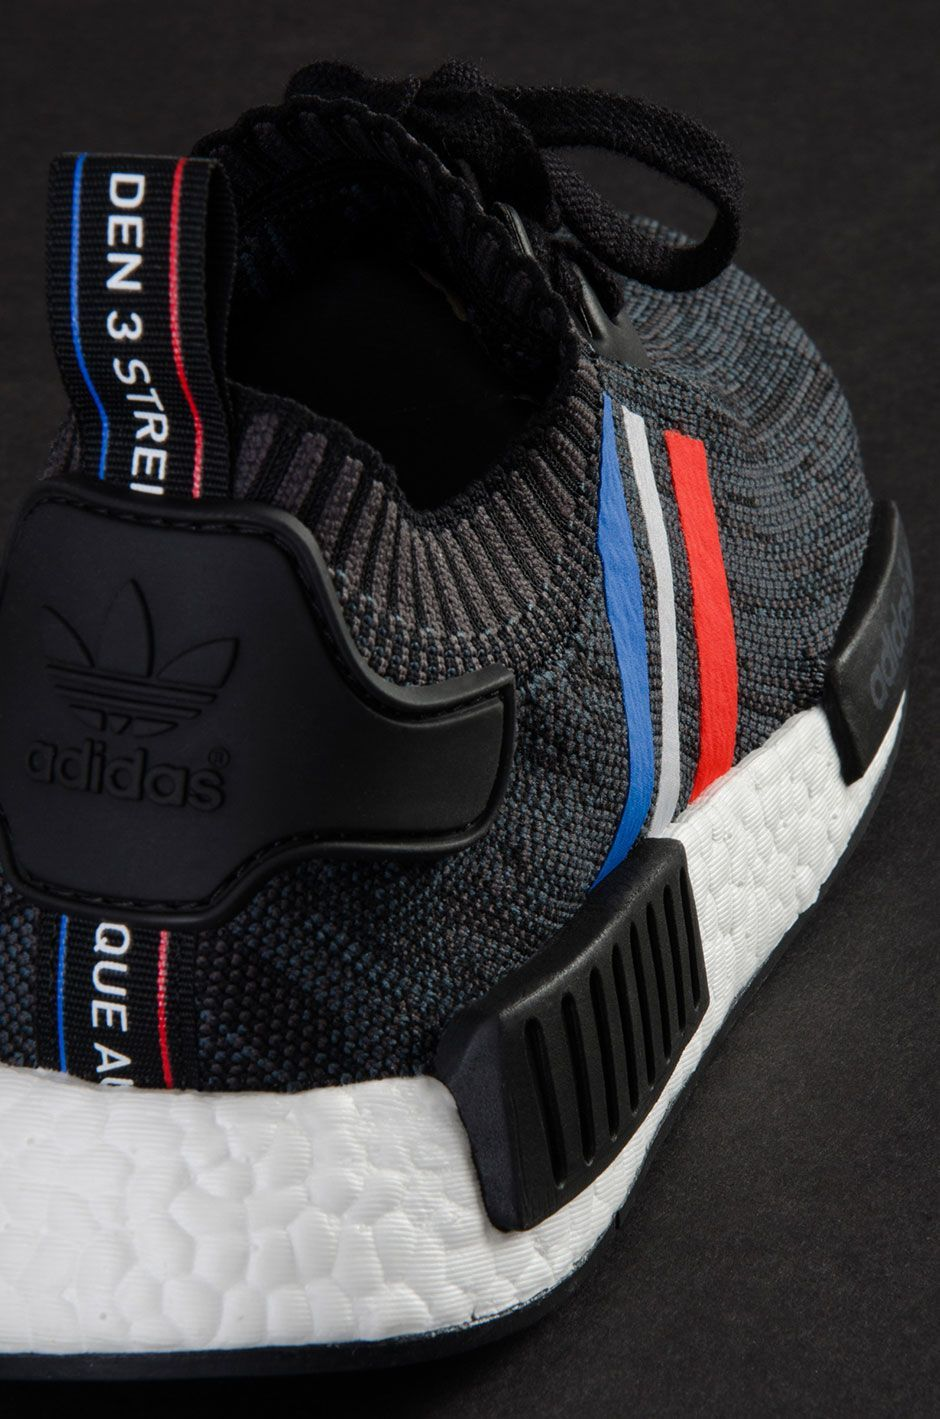 33066a93e The adidas NMD R1 Tri-Color Pack will release this November 2016 featuring  2 Primeknit constructions. More adidas NMD release date info here